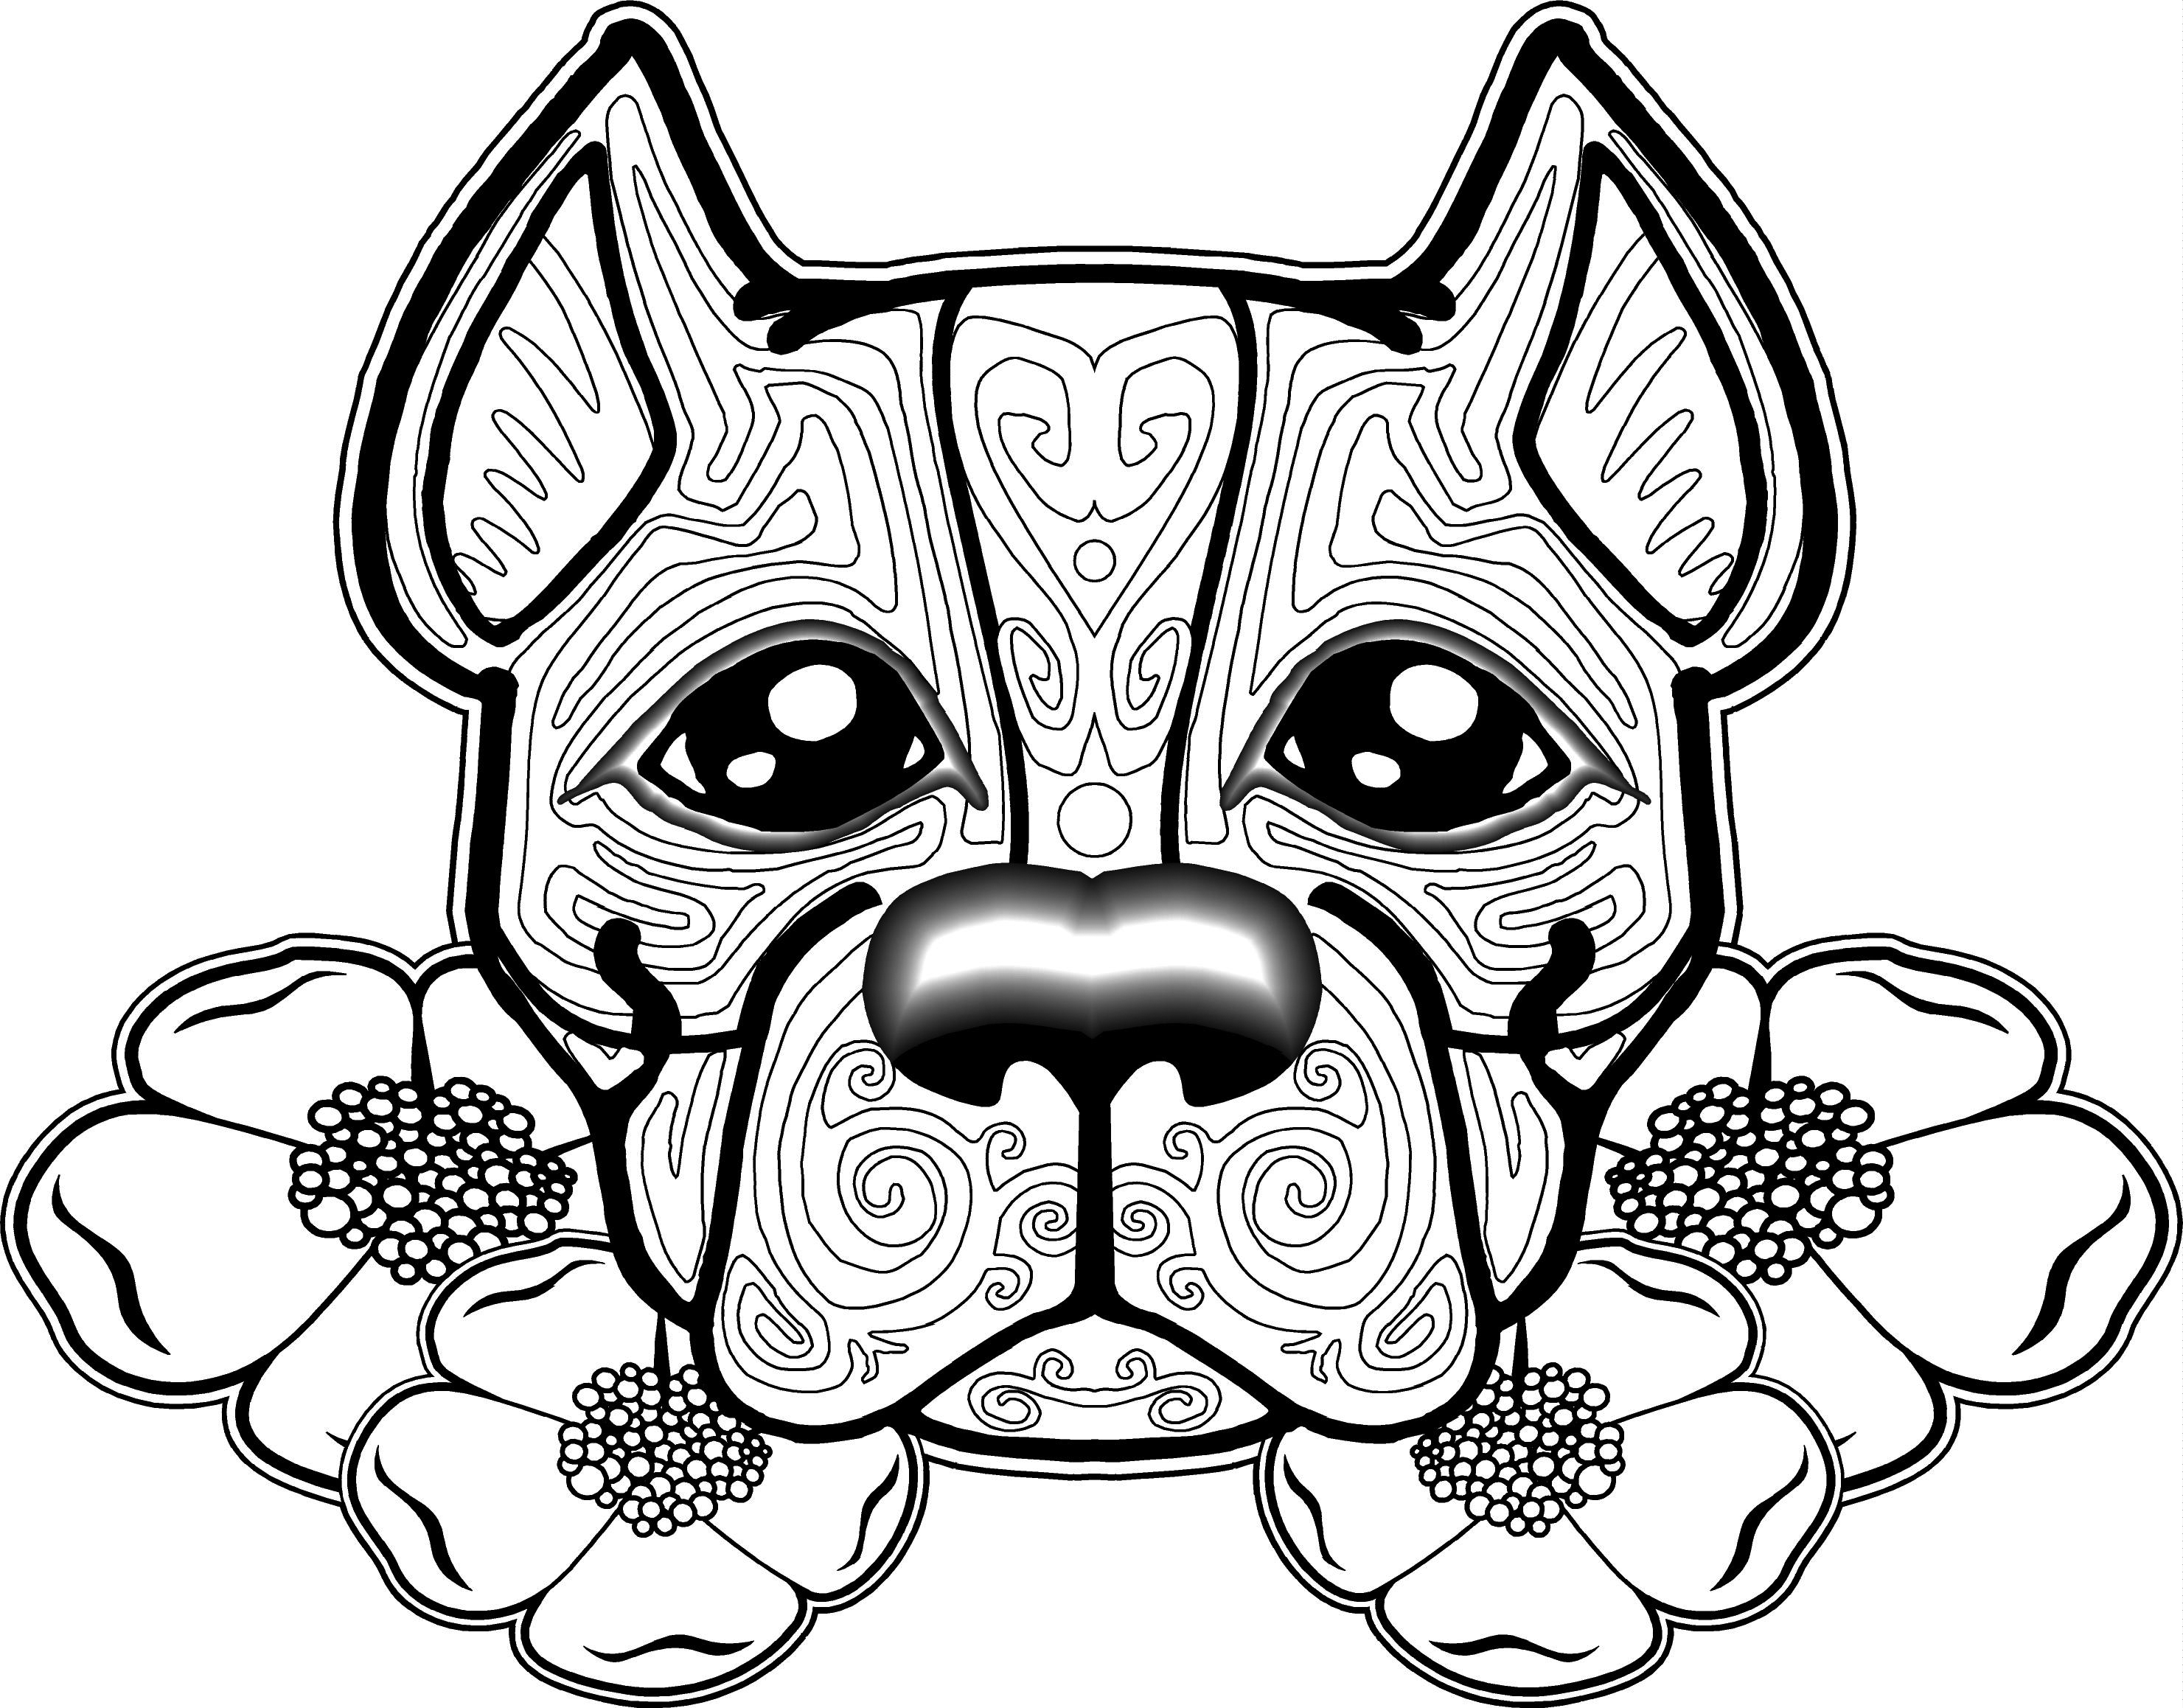 Blue Nose Pitbull Reless Stress Coloring Pages - Worksheet ...